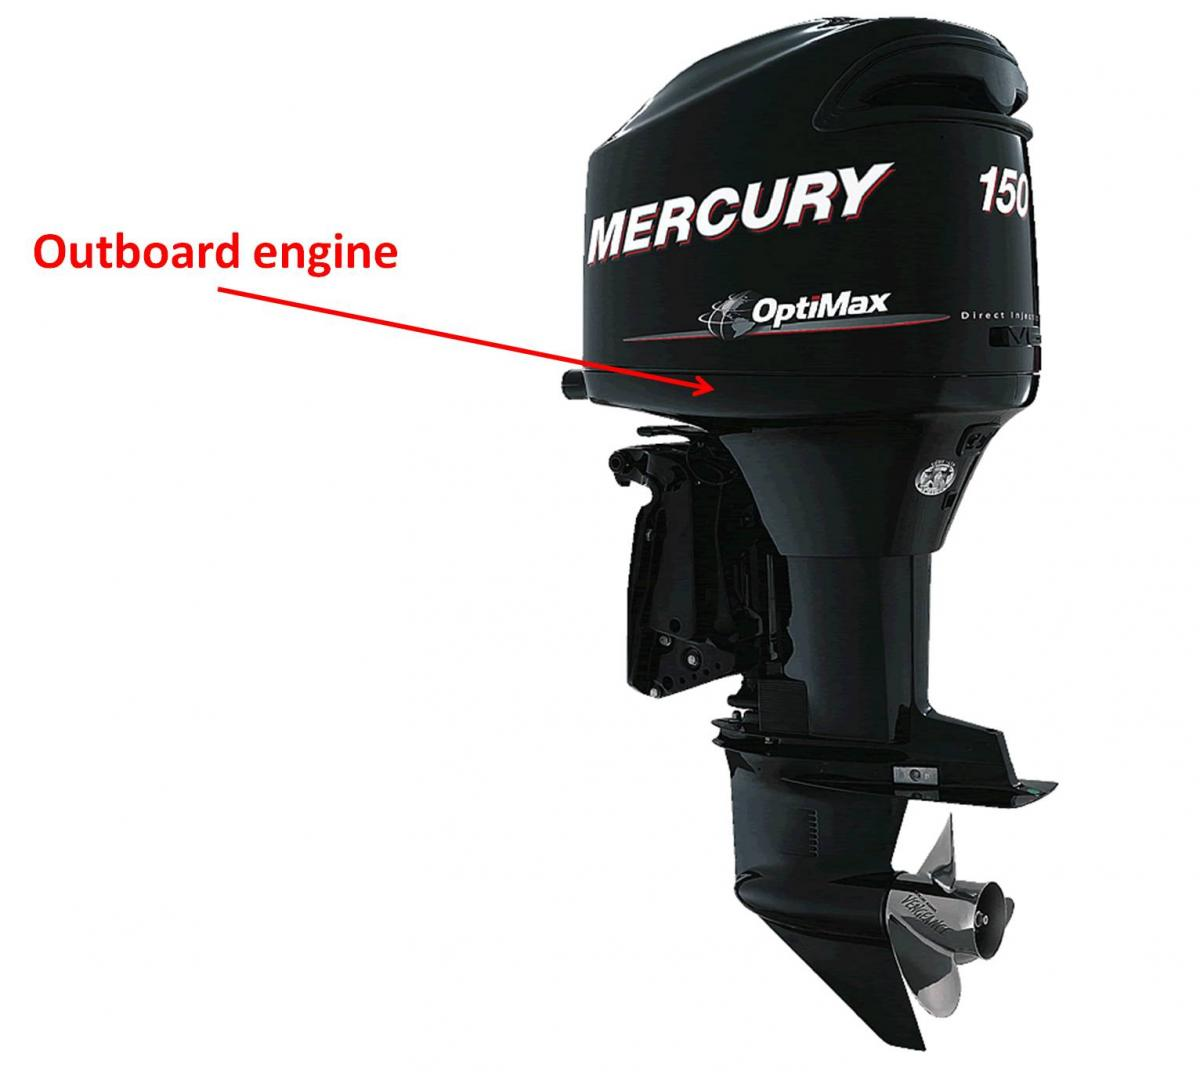 Click image for larger version  Name:outboard engine.jpg Views:68 Size:64.2 KB ID:80023